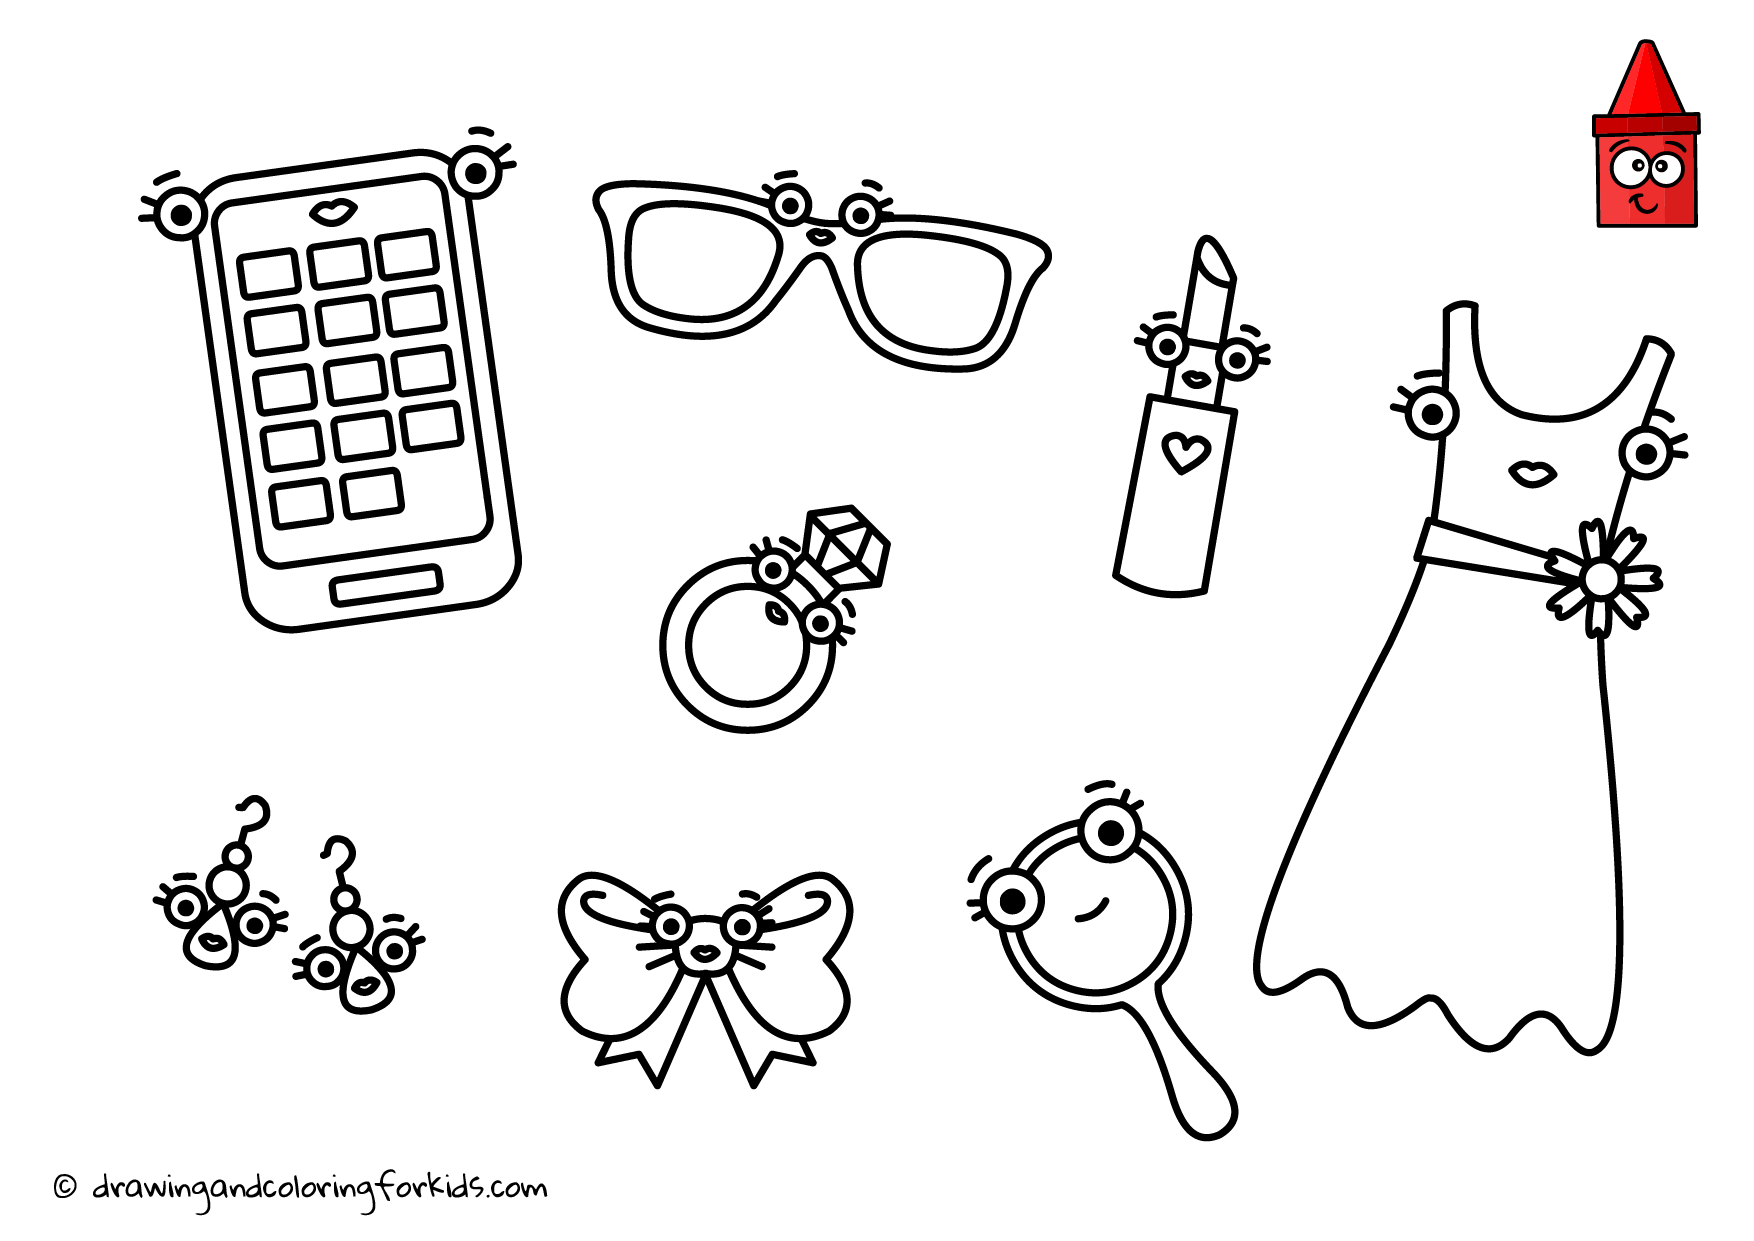 Drawing Stuff For Girls Drawing Diamonds Drawing Accessories Girls Coloring Pages Coloring Pages For Kids Coloring For Kids Coloring Pages